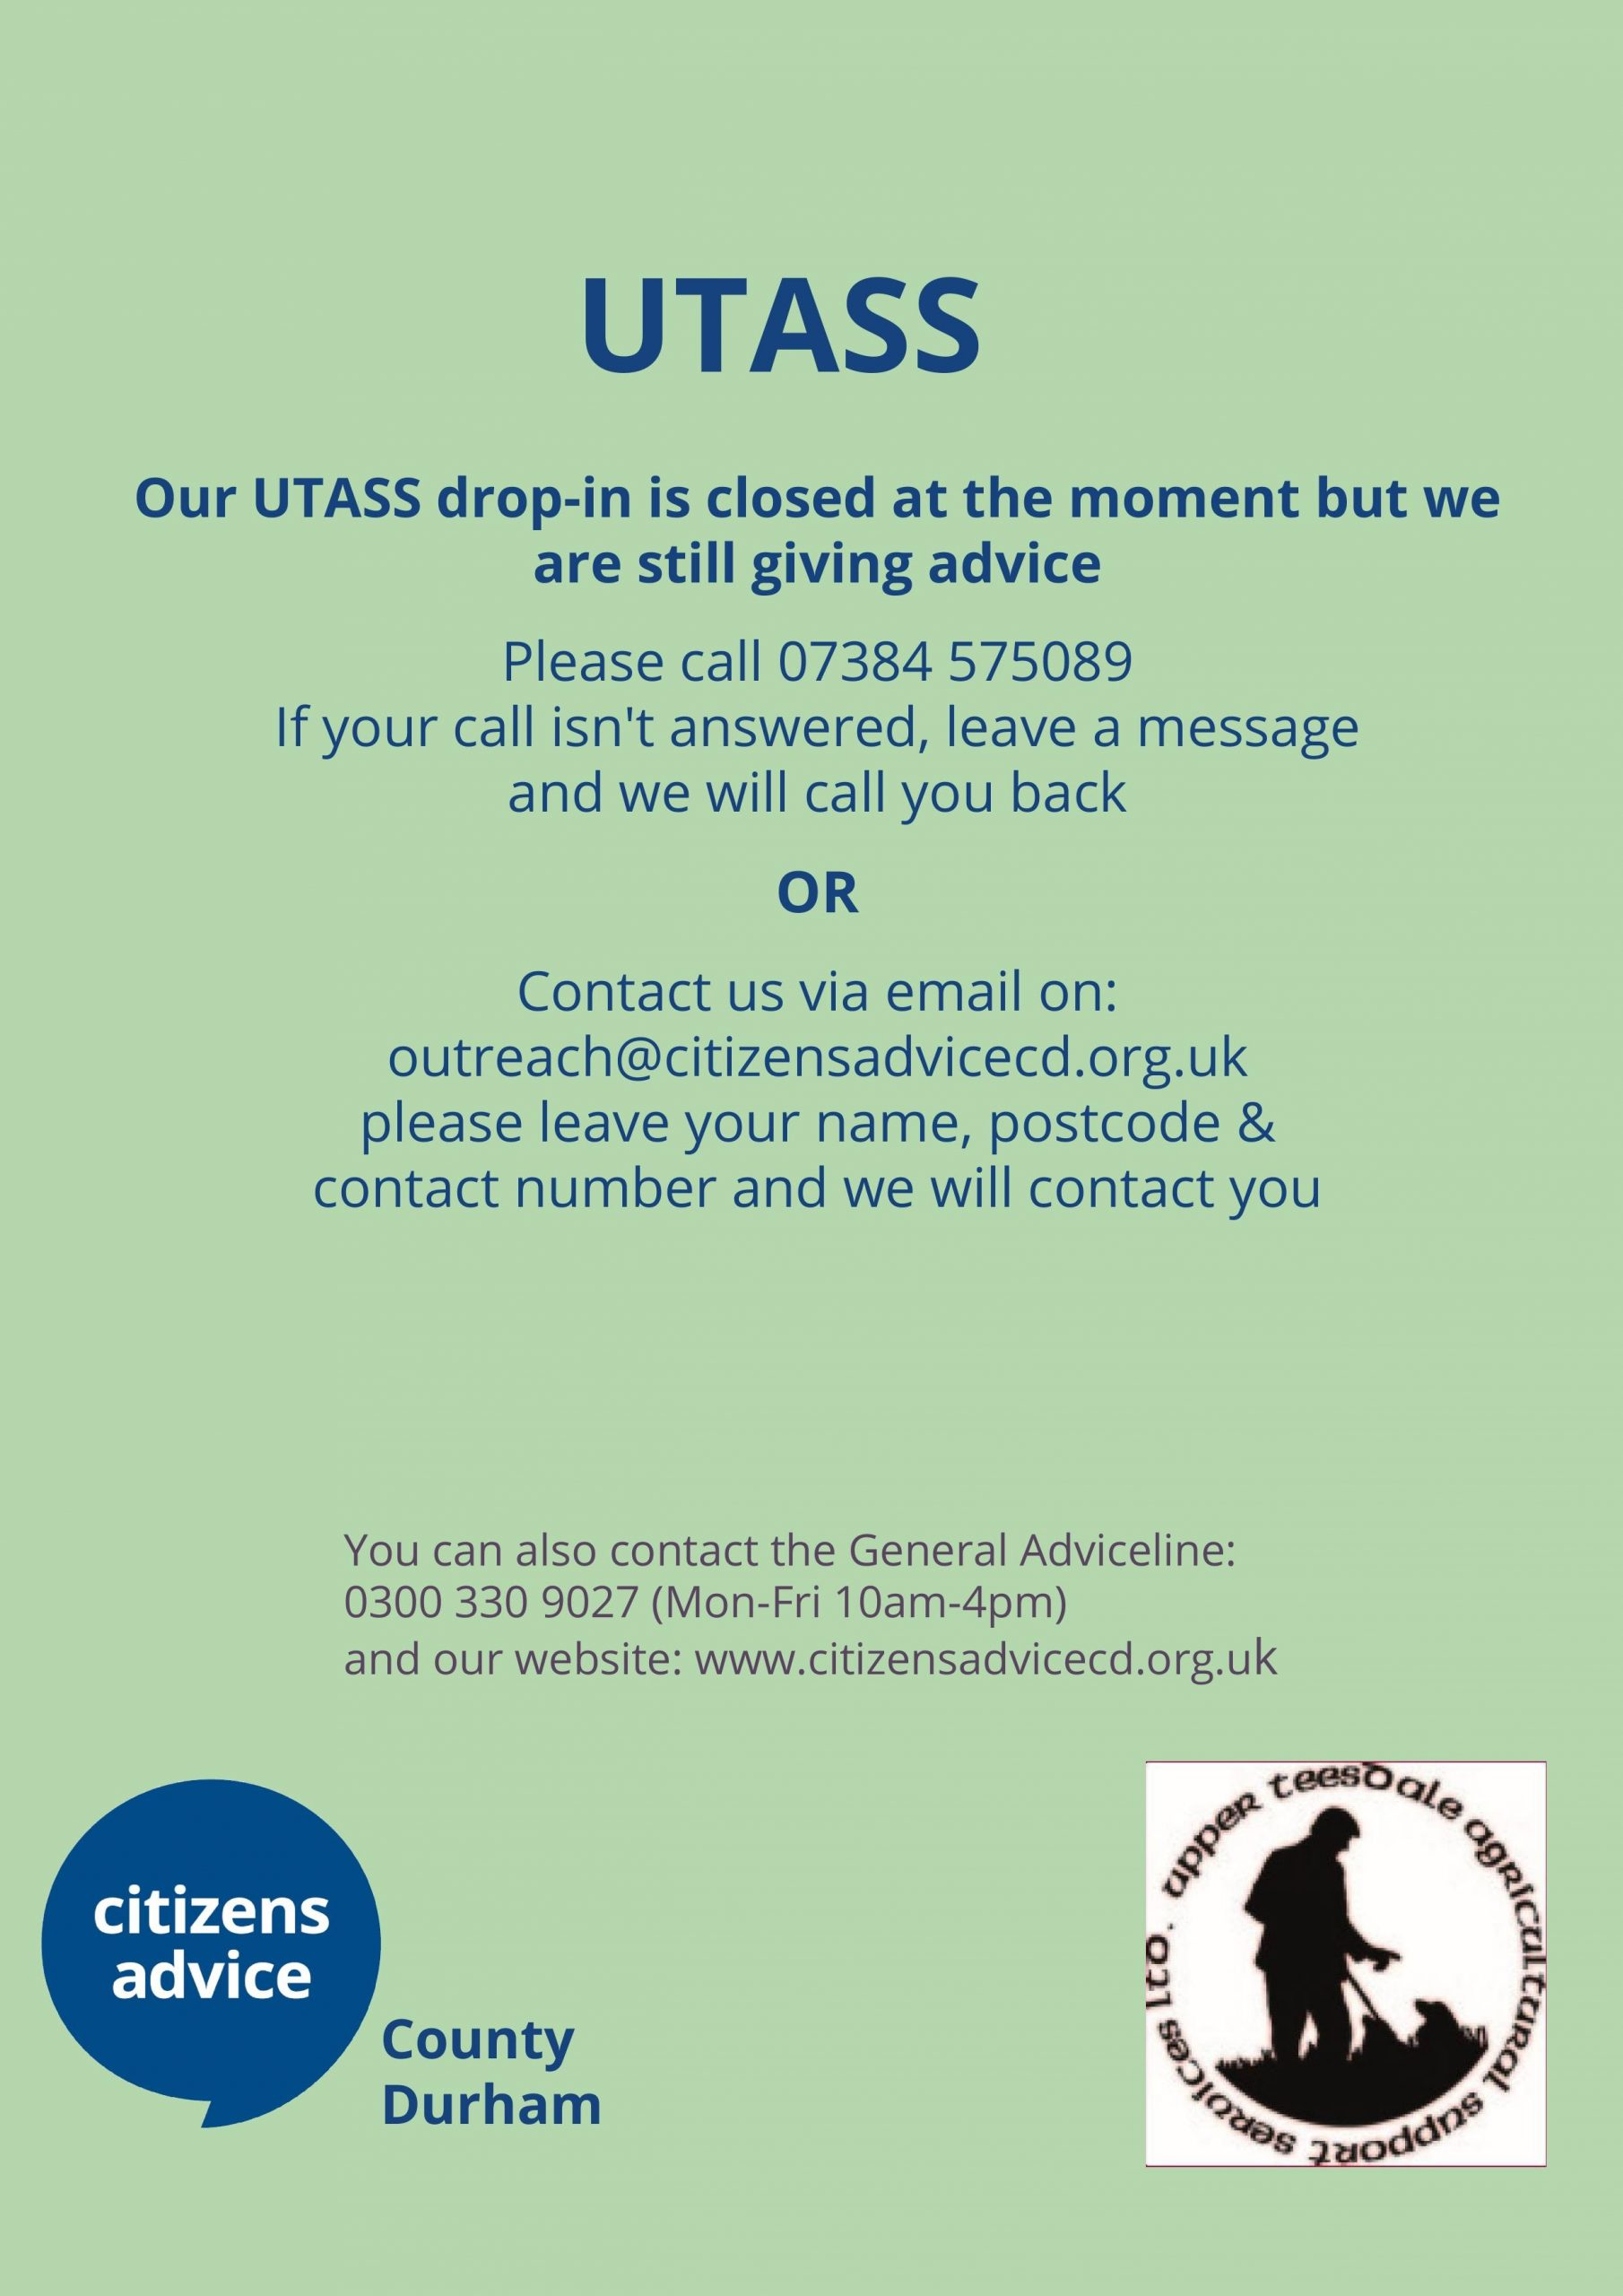 UTASS drop in closed – but please call